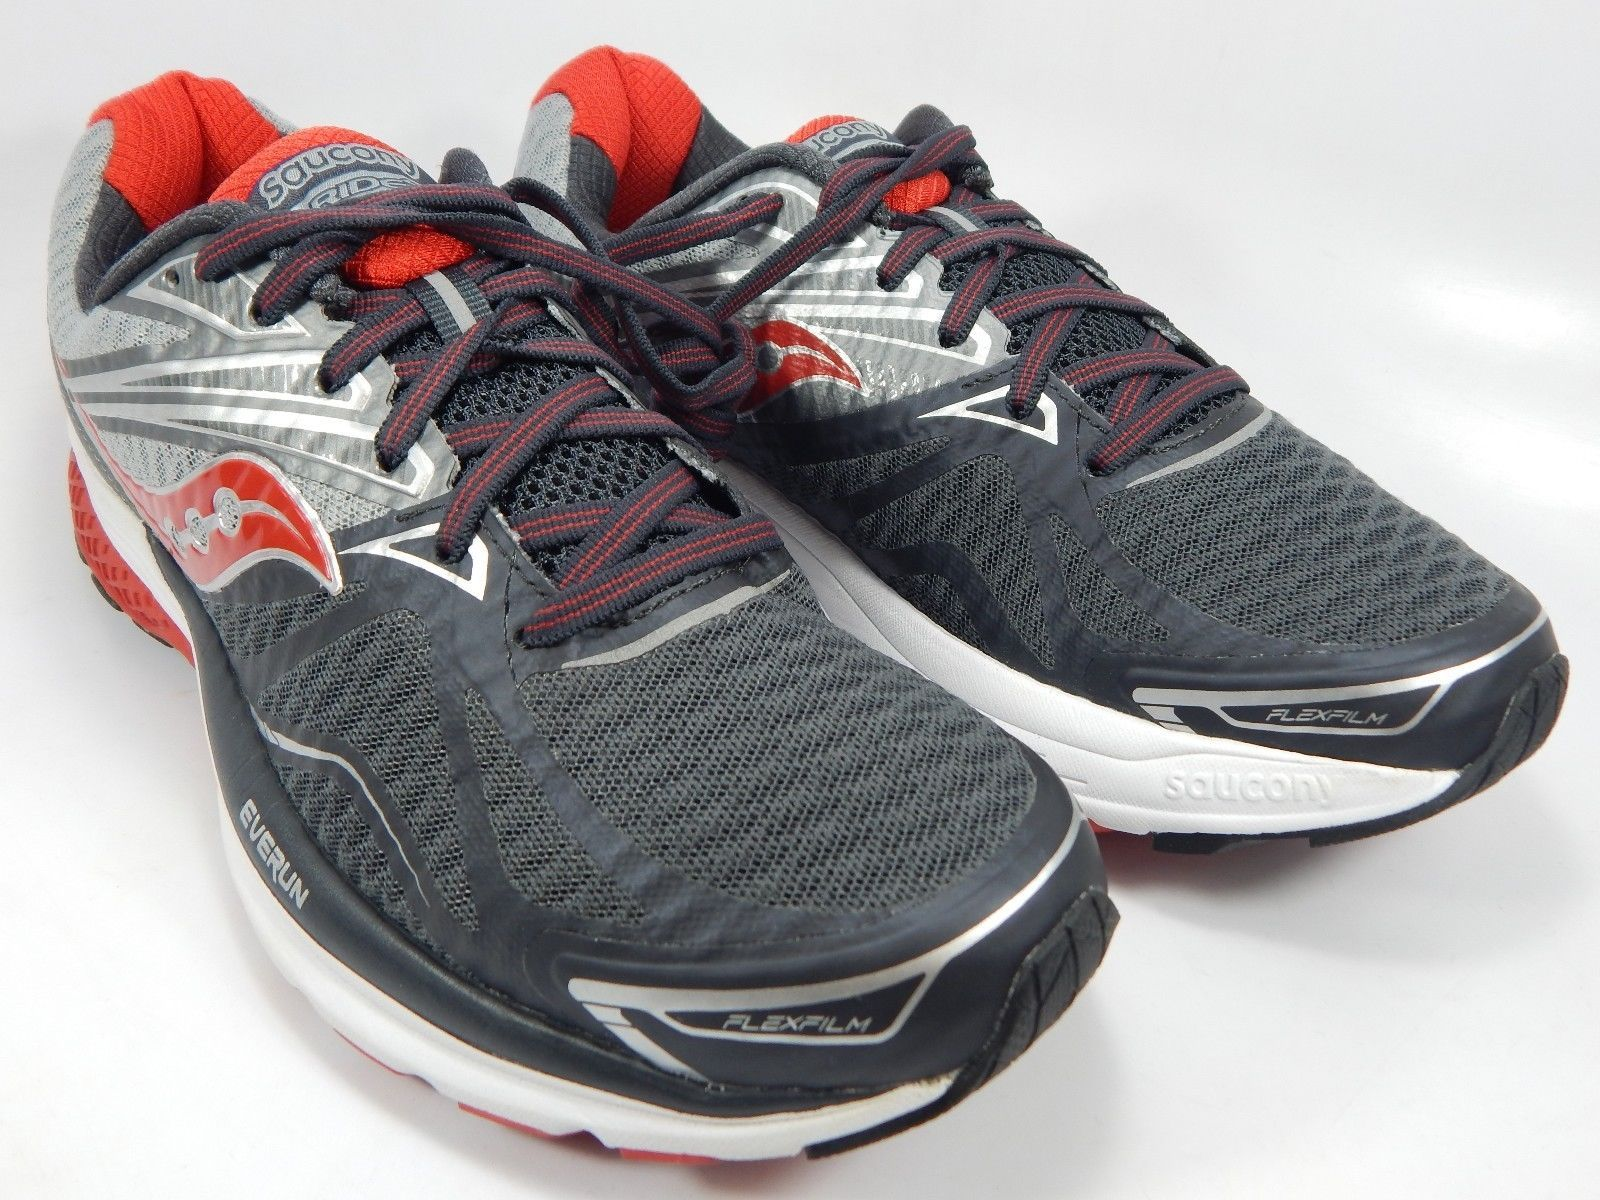 Saucony Ride 9  Men's Running Shoes Size US 9 M (D) EU 42.5 Gray Red S20318-1